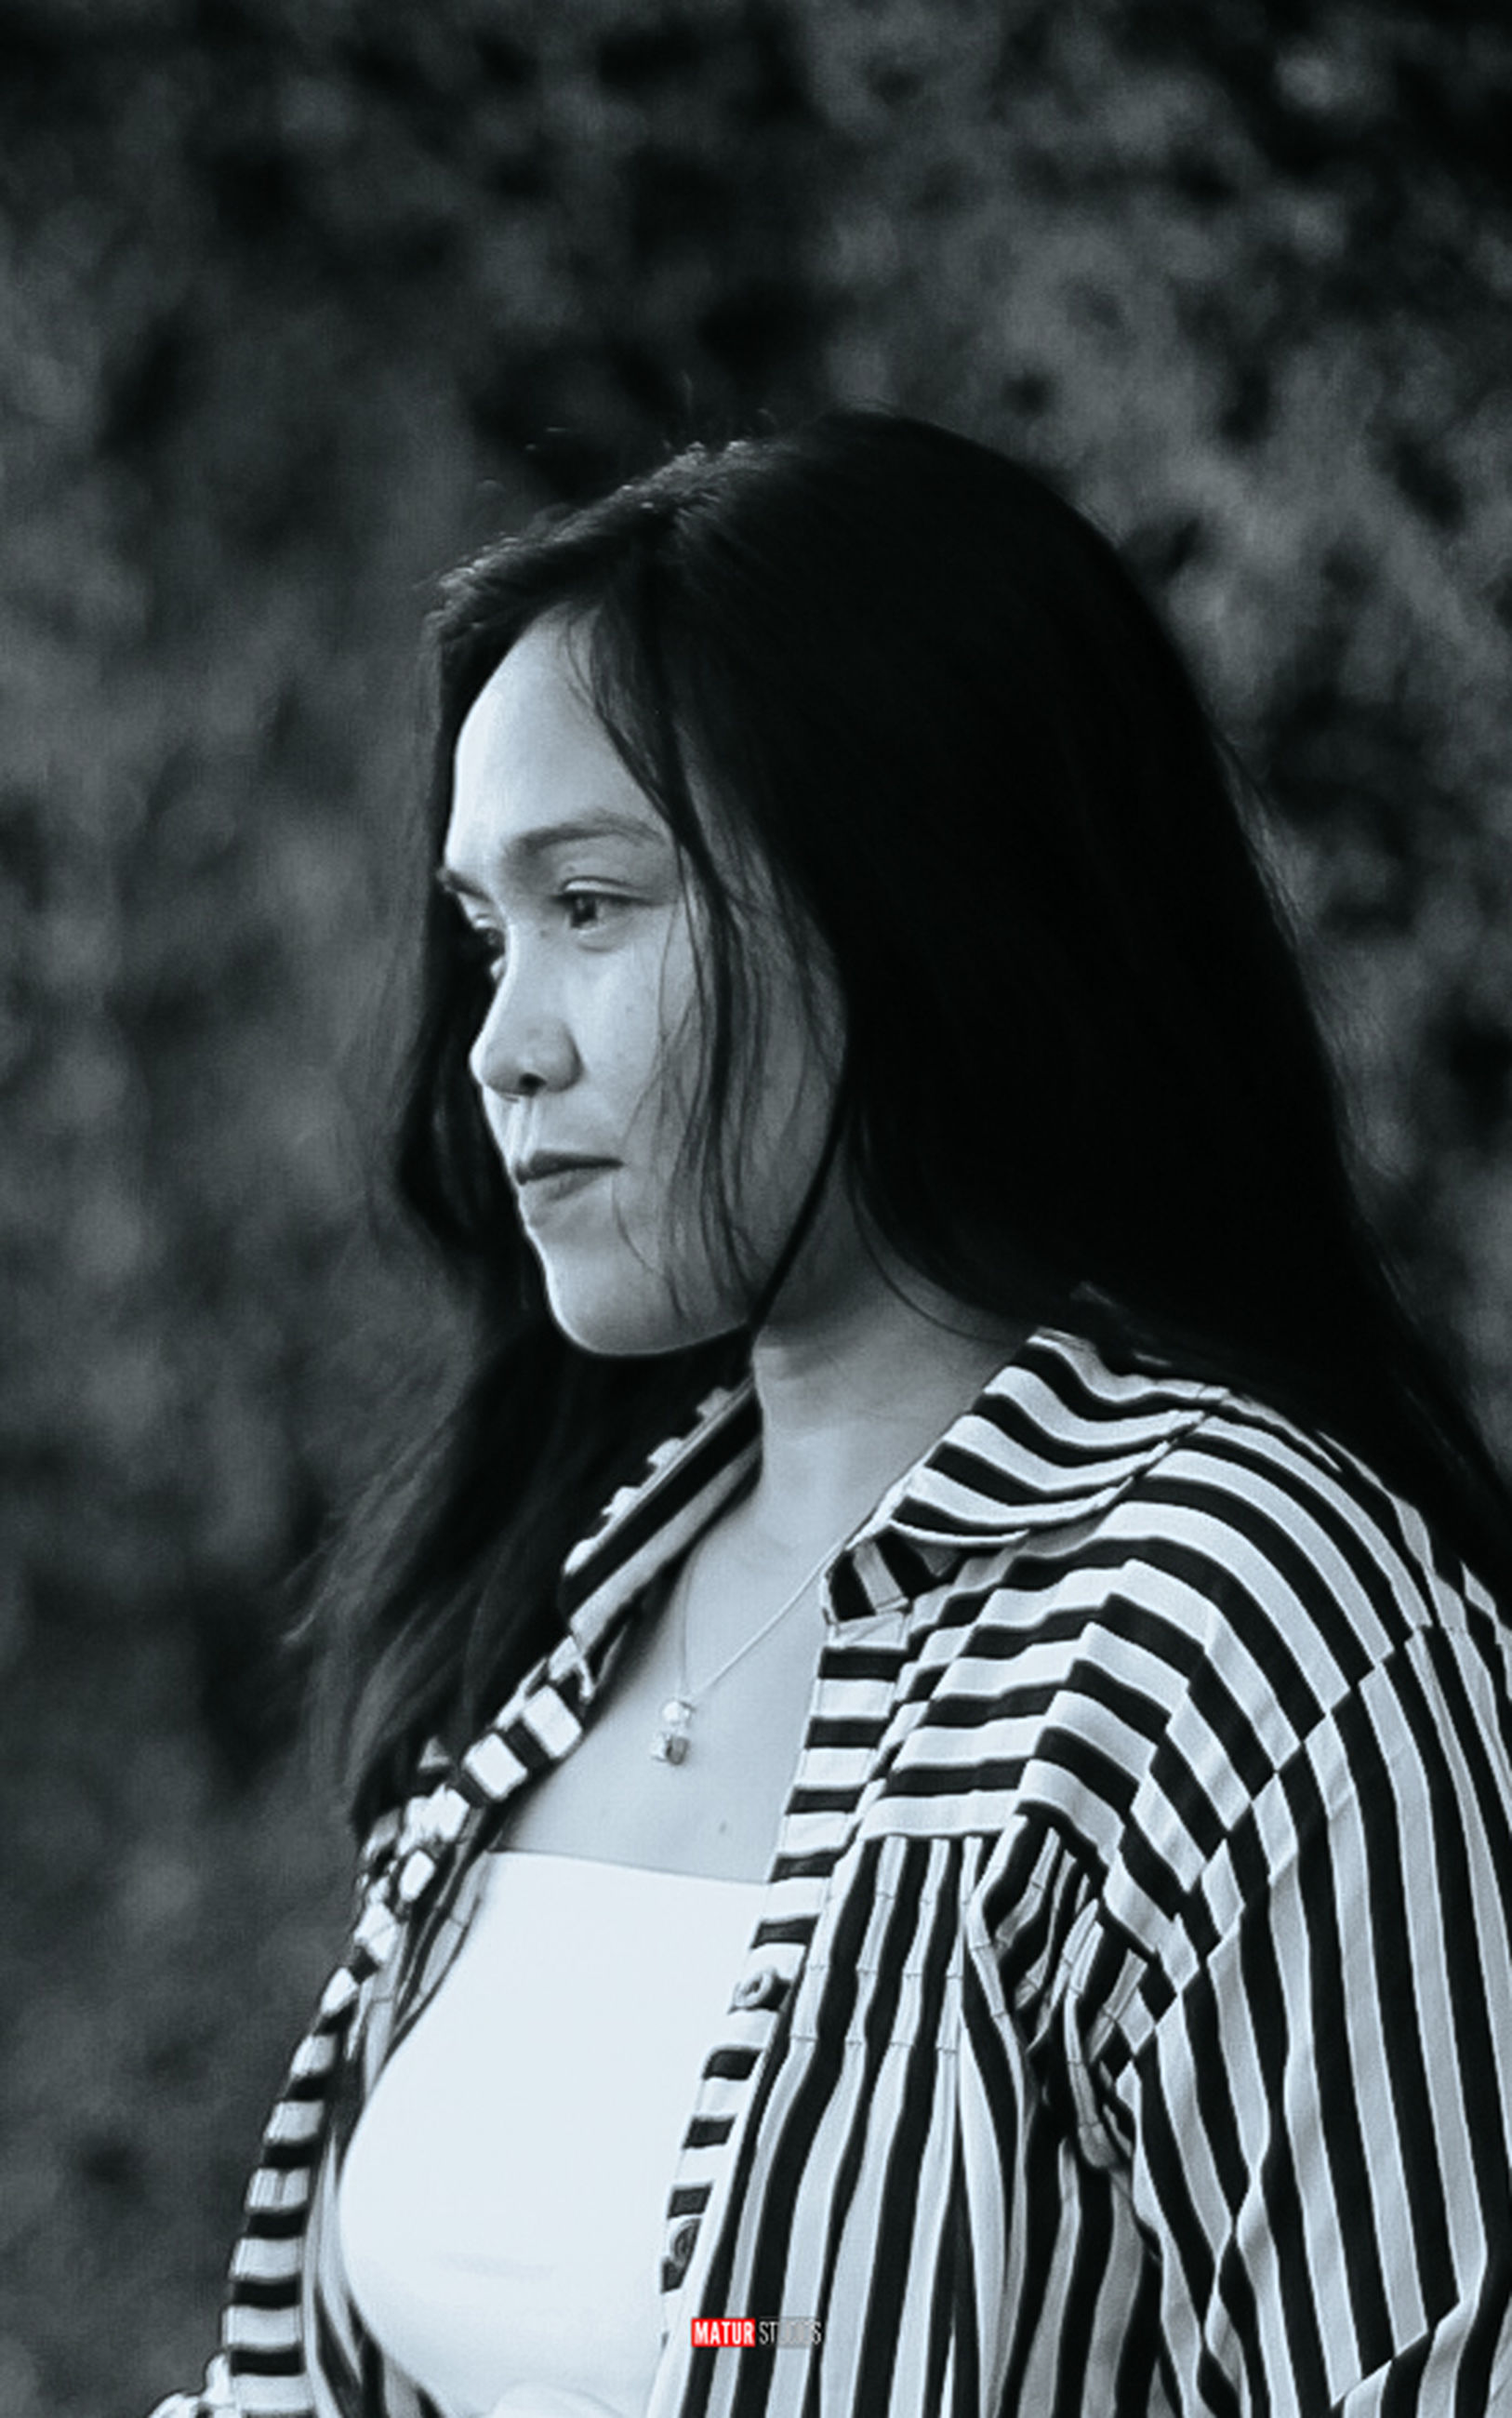 white, black and white, black, one person, women, monochrome photography, adult, portrait photography, monochrome, young adult, striped, portrait, female, hairstyle, person, photo shoot, looking, lifestyles, long hair, casual clothing, focus on foreground, waist up, clothing, standing, nature, outdoors, looking away, leisure activity, fashion, emotion, day, contemplation, headshot, smiling